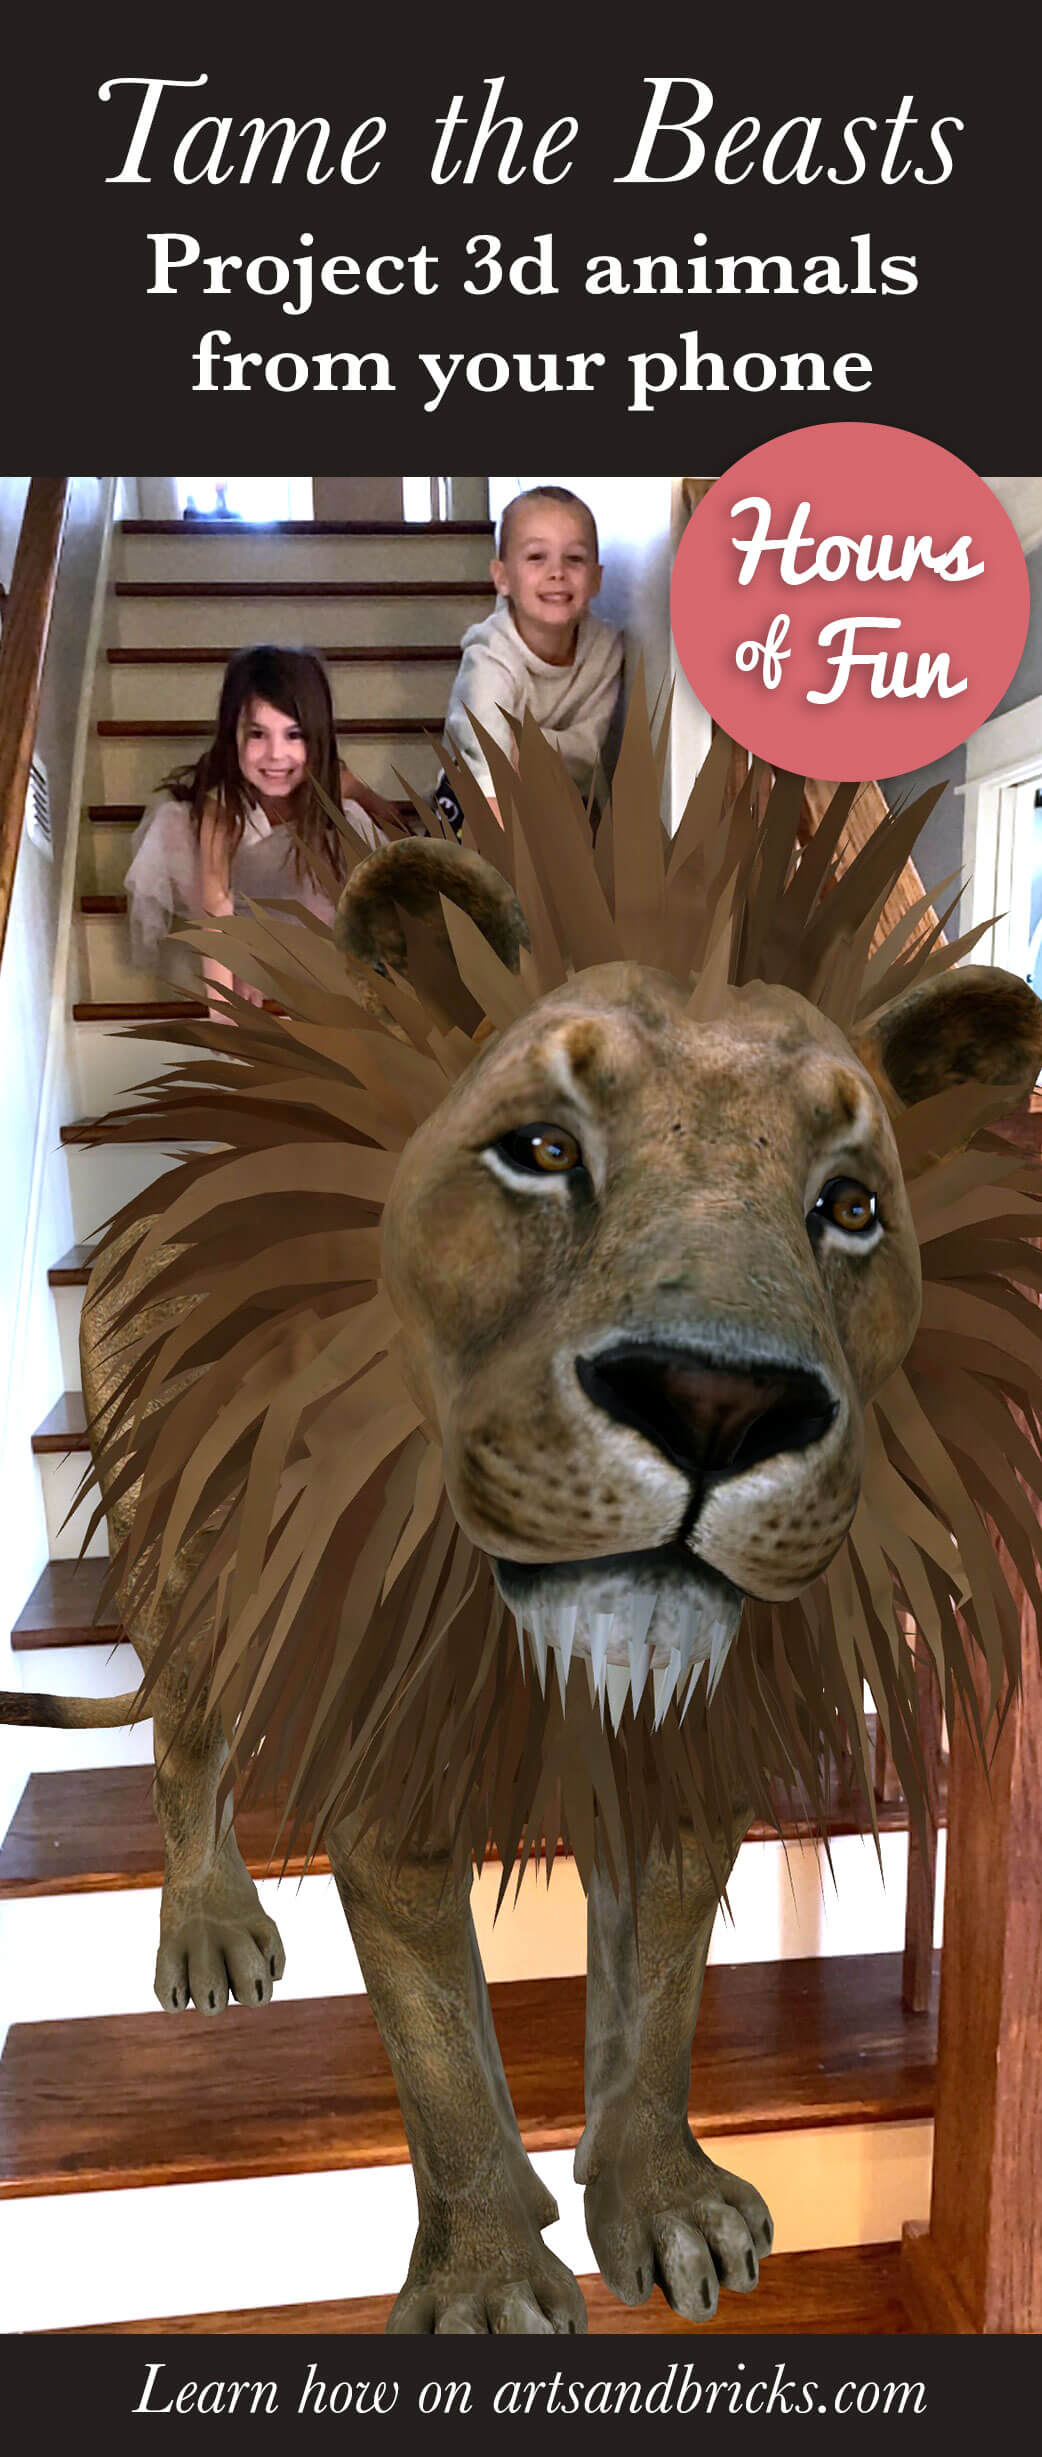 Tame the Beasts - Project 3D animals from your phone - social media trend!